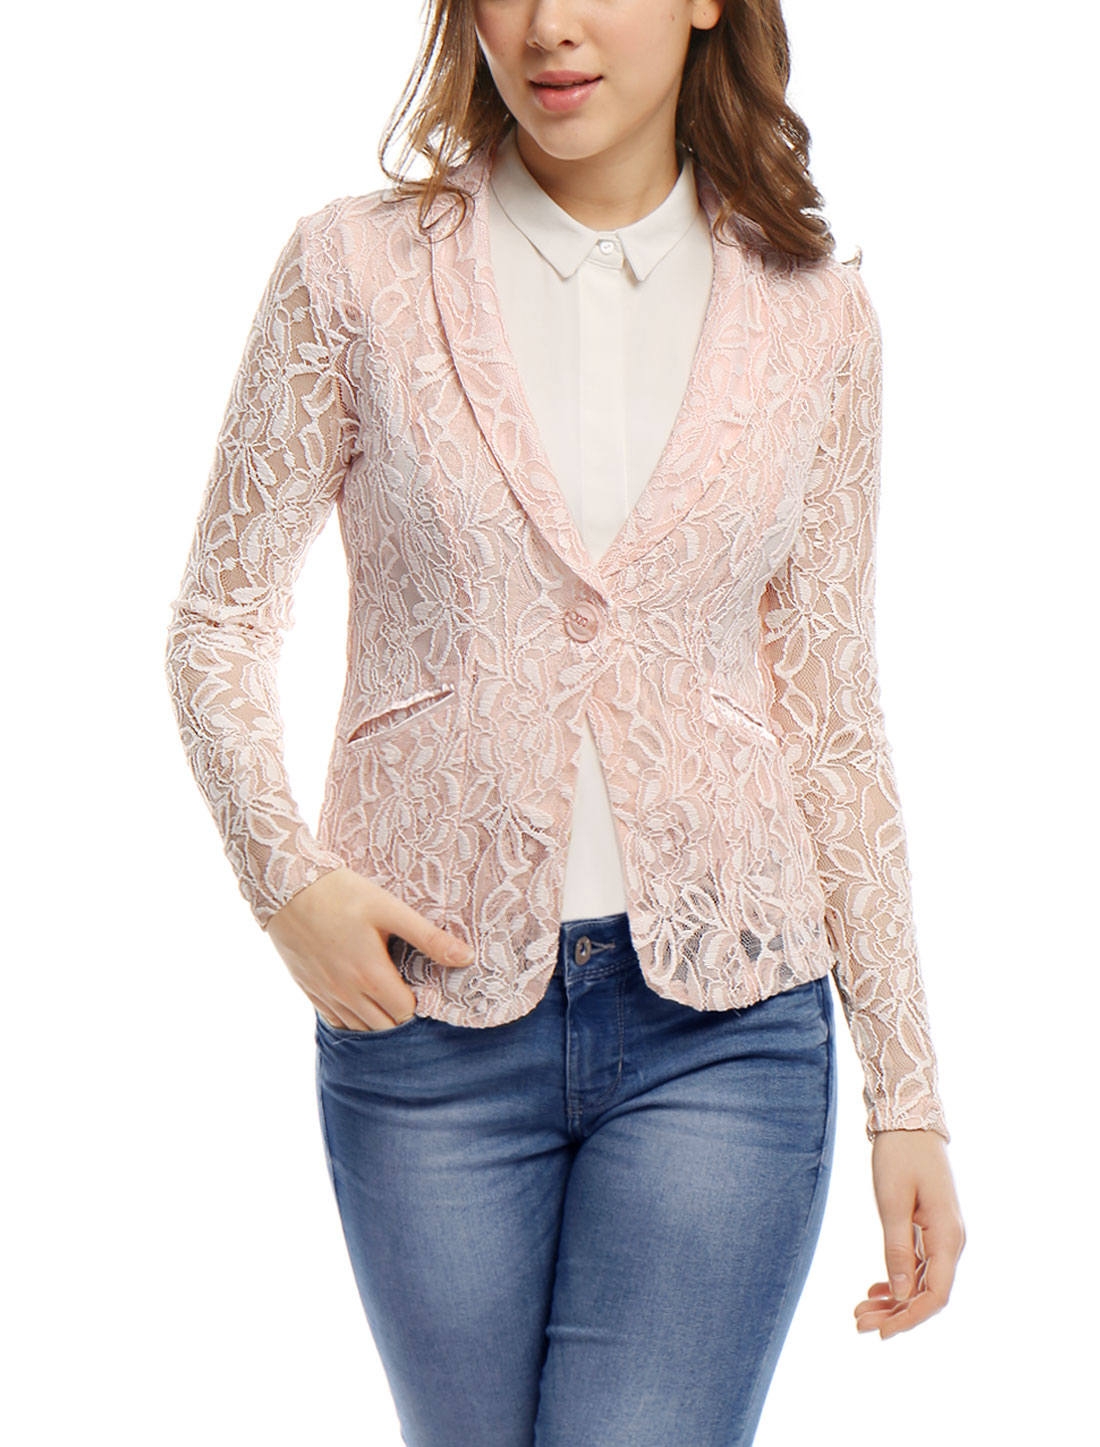 Women Shawl Collar See Through Floral Lace Blazer Jacket Pink S